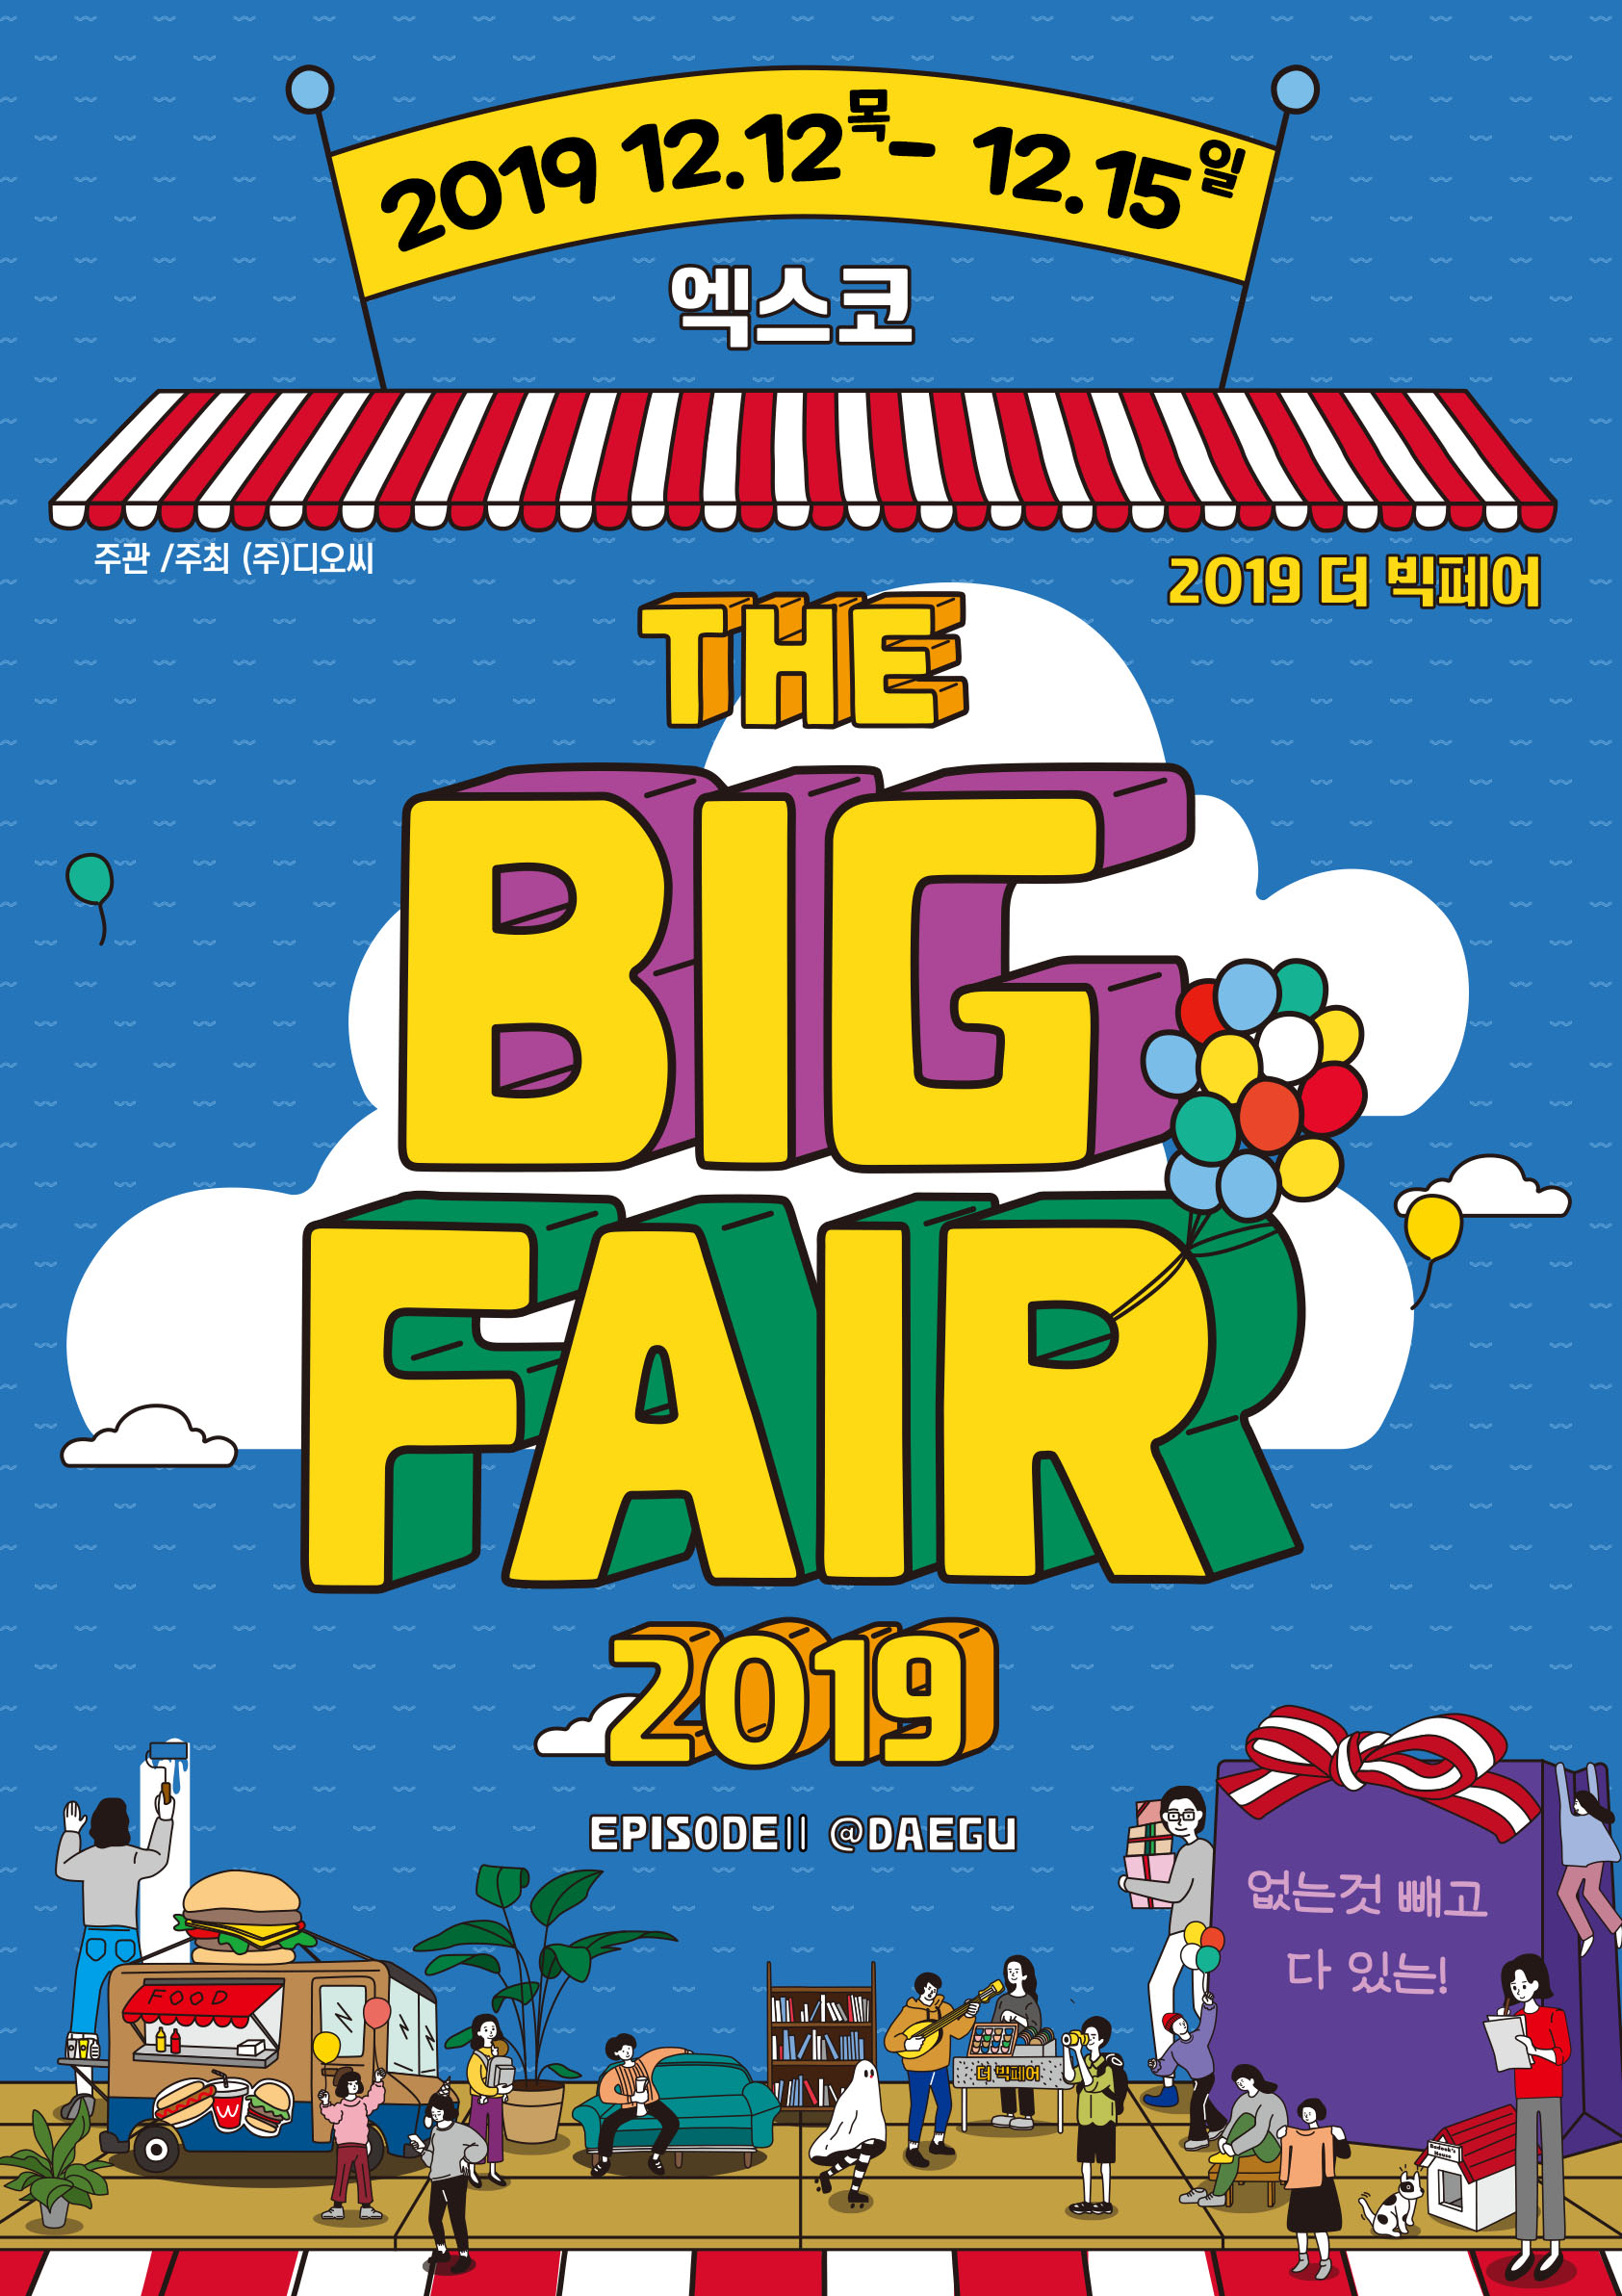 2019 더빅페어(The Big Fair 2019)